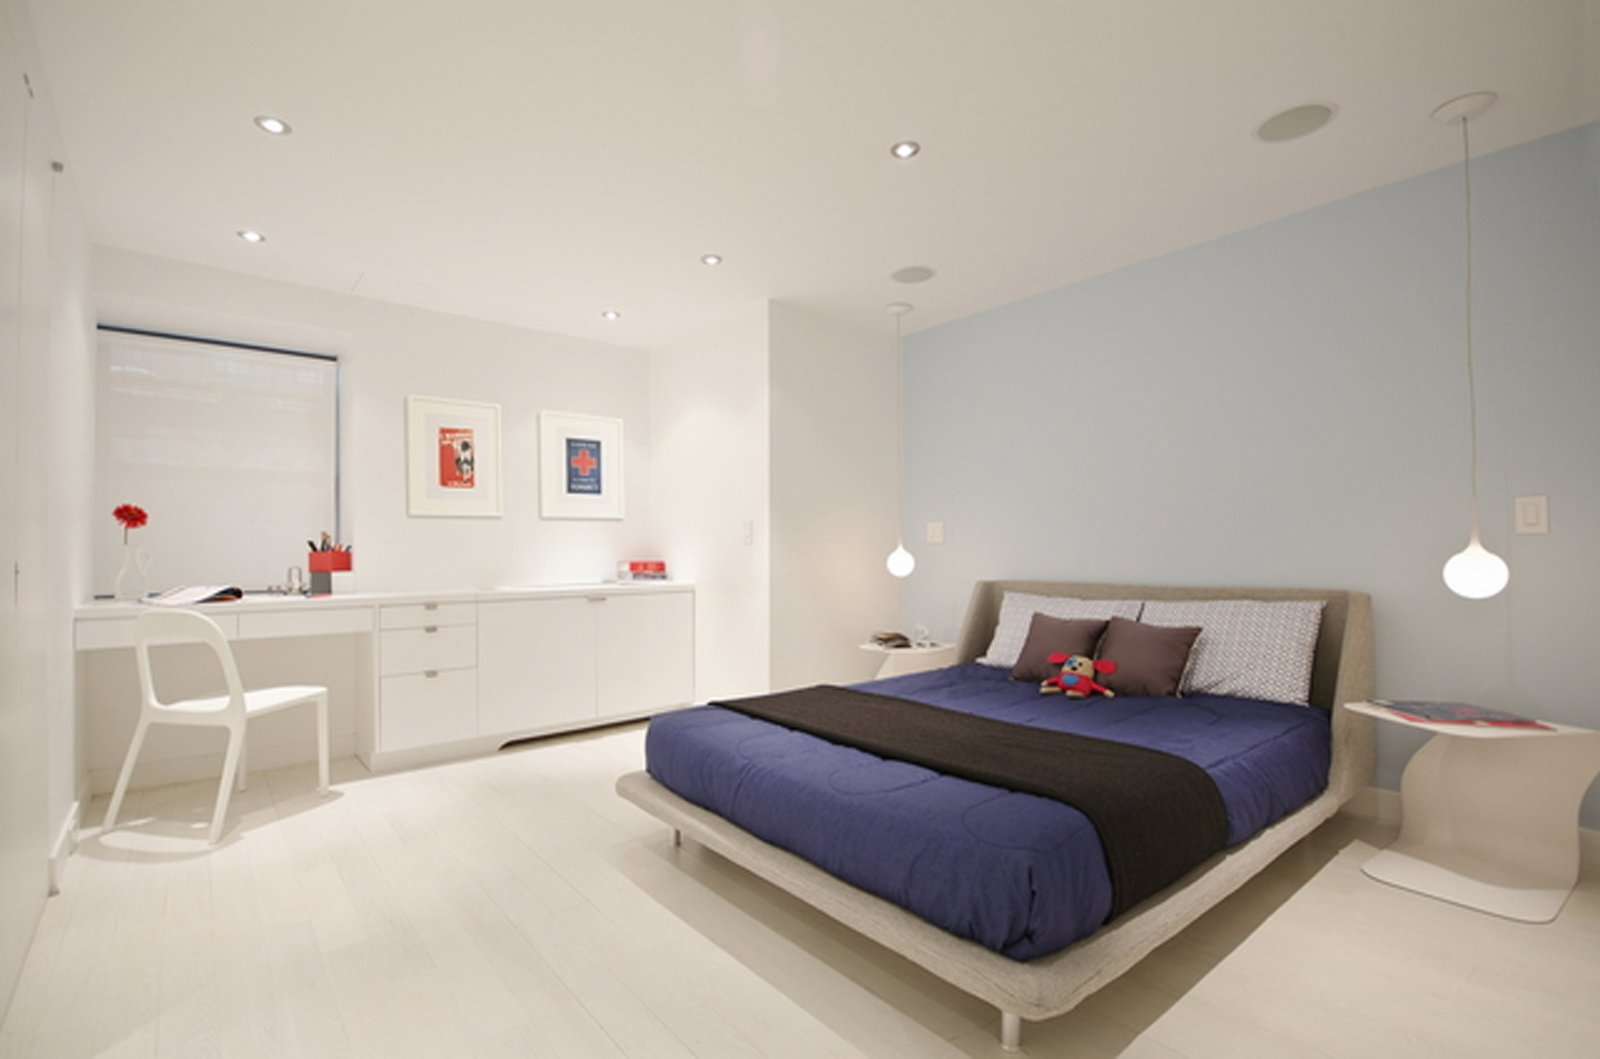 Here's the master bedroom on the lower level. The bed is from Blu Dot and the side table is by Mario Mazzer from Property Furniture.  University Place Apartment by Diana Budds